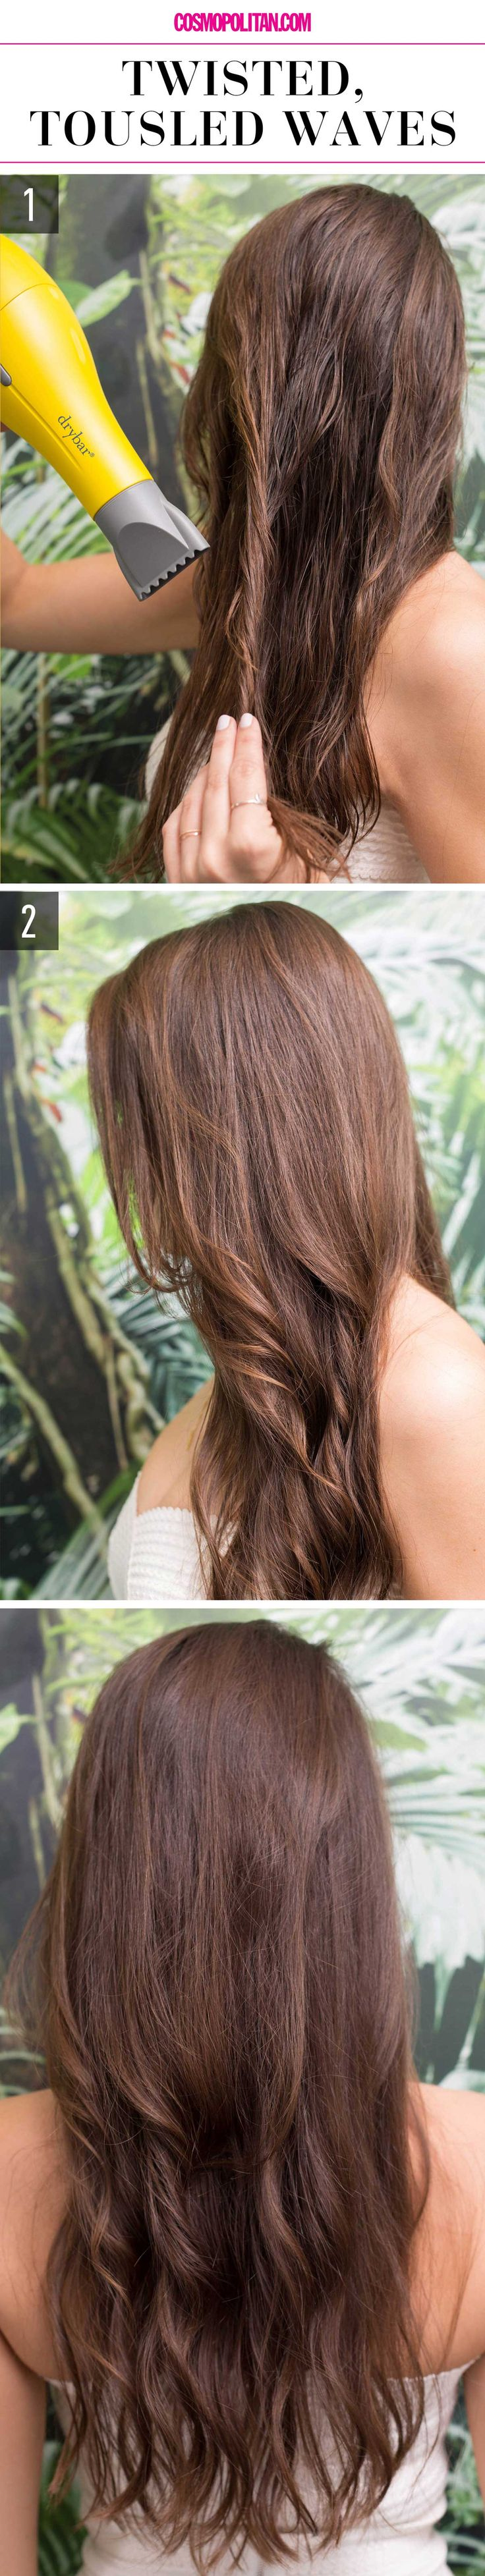 15 Super-Easy Hairstyles For When You're Feeling Particularly Lazy- Twisted, Tousled Waves- Put your blow dryer to good use by obtaining straight yet natural locks in just minutes. Learn the how-to and get more hair tricks for those days you just can't get out of bed at redbookmag.com.